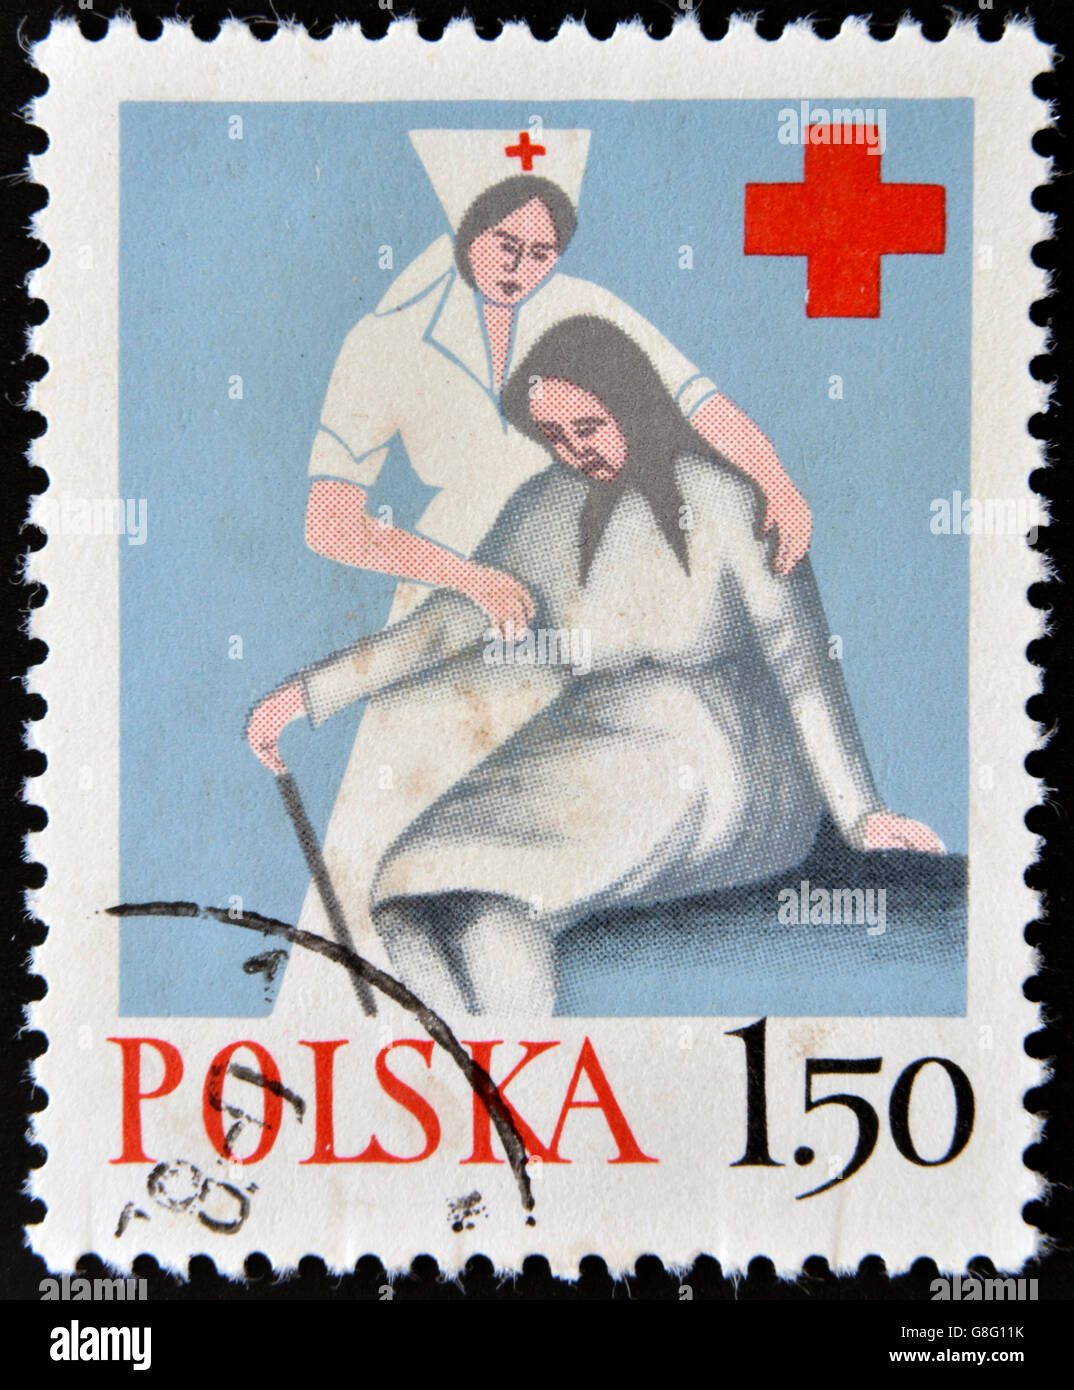 POLAND - CIRCA 1970: A stamp printed in Poland shows medical sister helps the elderly woman, circa 1970 - Stock Image